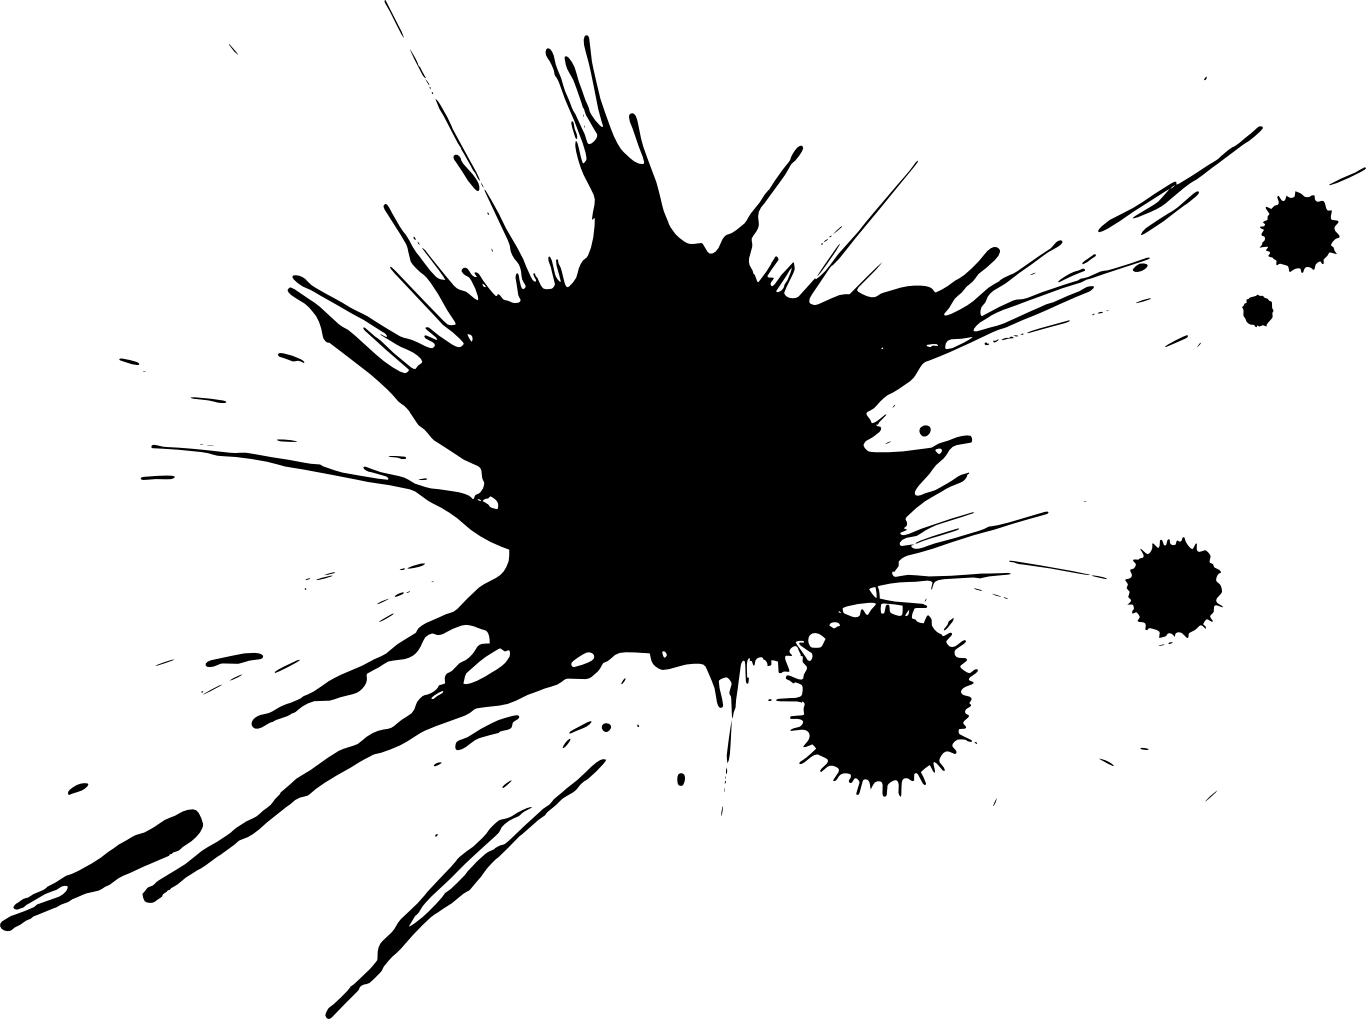 Paint splatter .png. Splatters png transparent